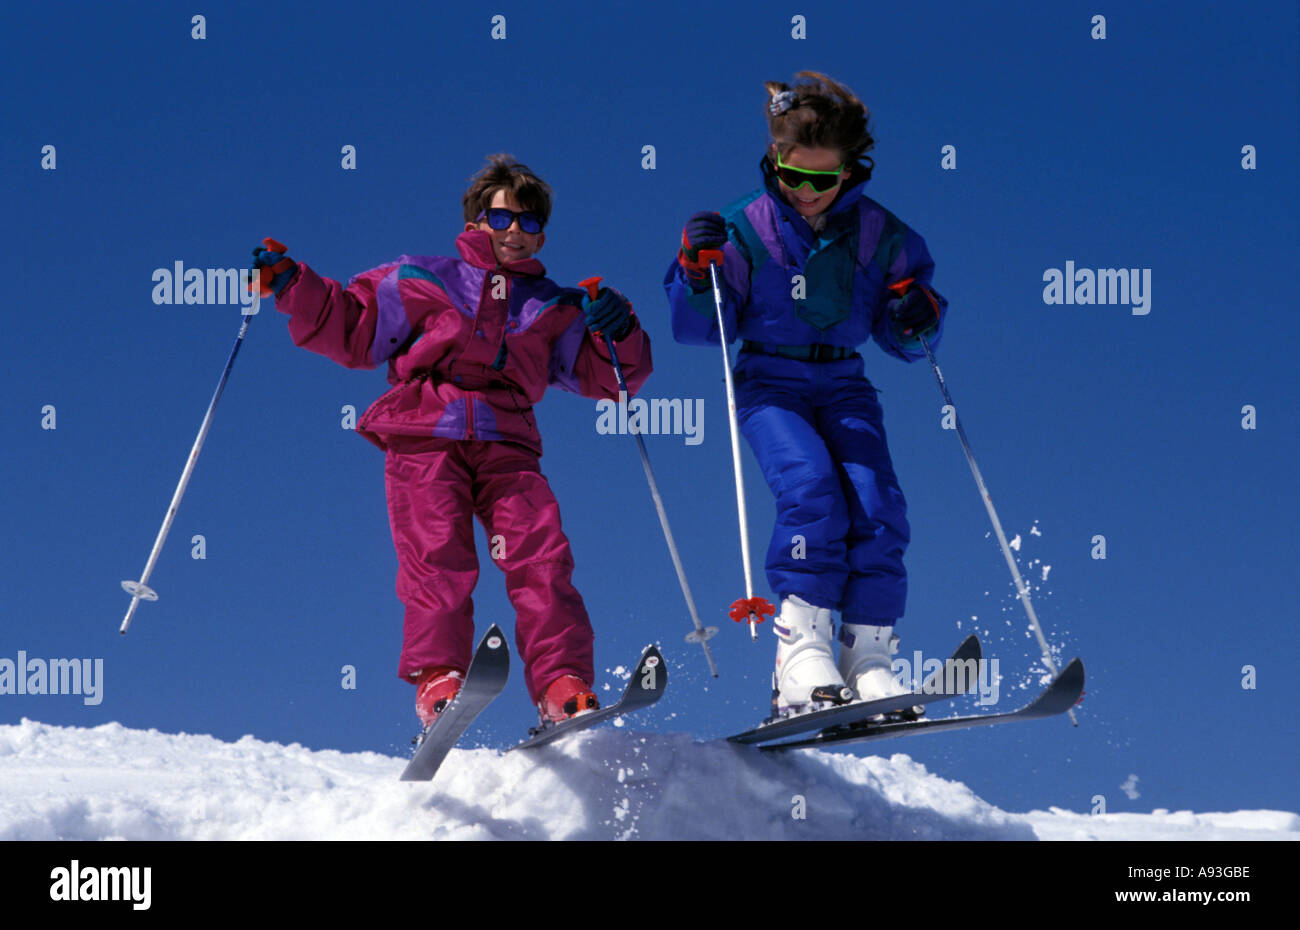 Two children aged about 8 in ski suits skiing over ridge of slope - Stock Image